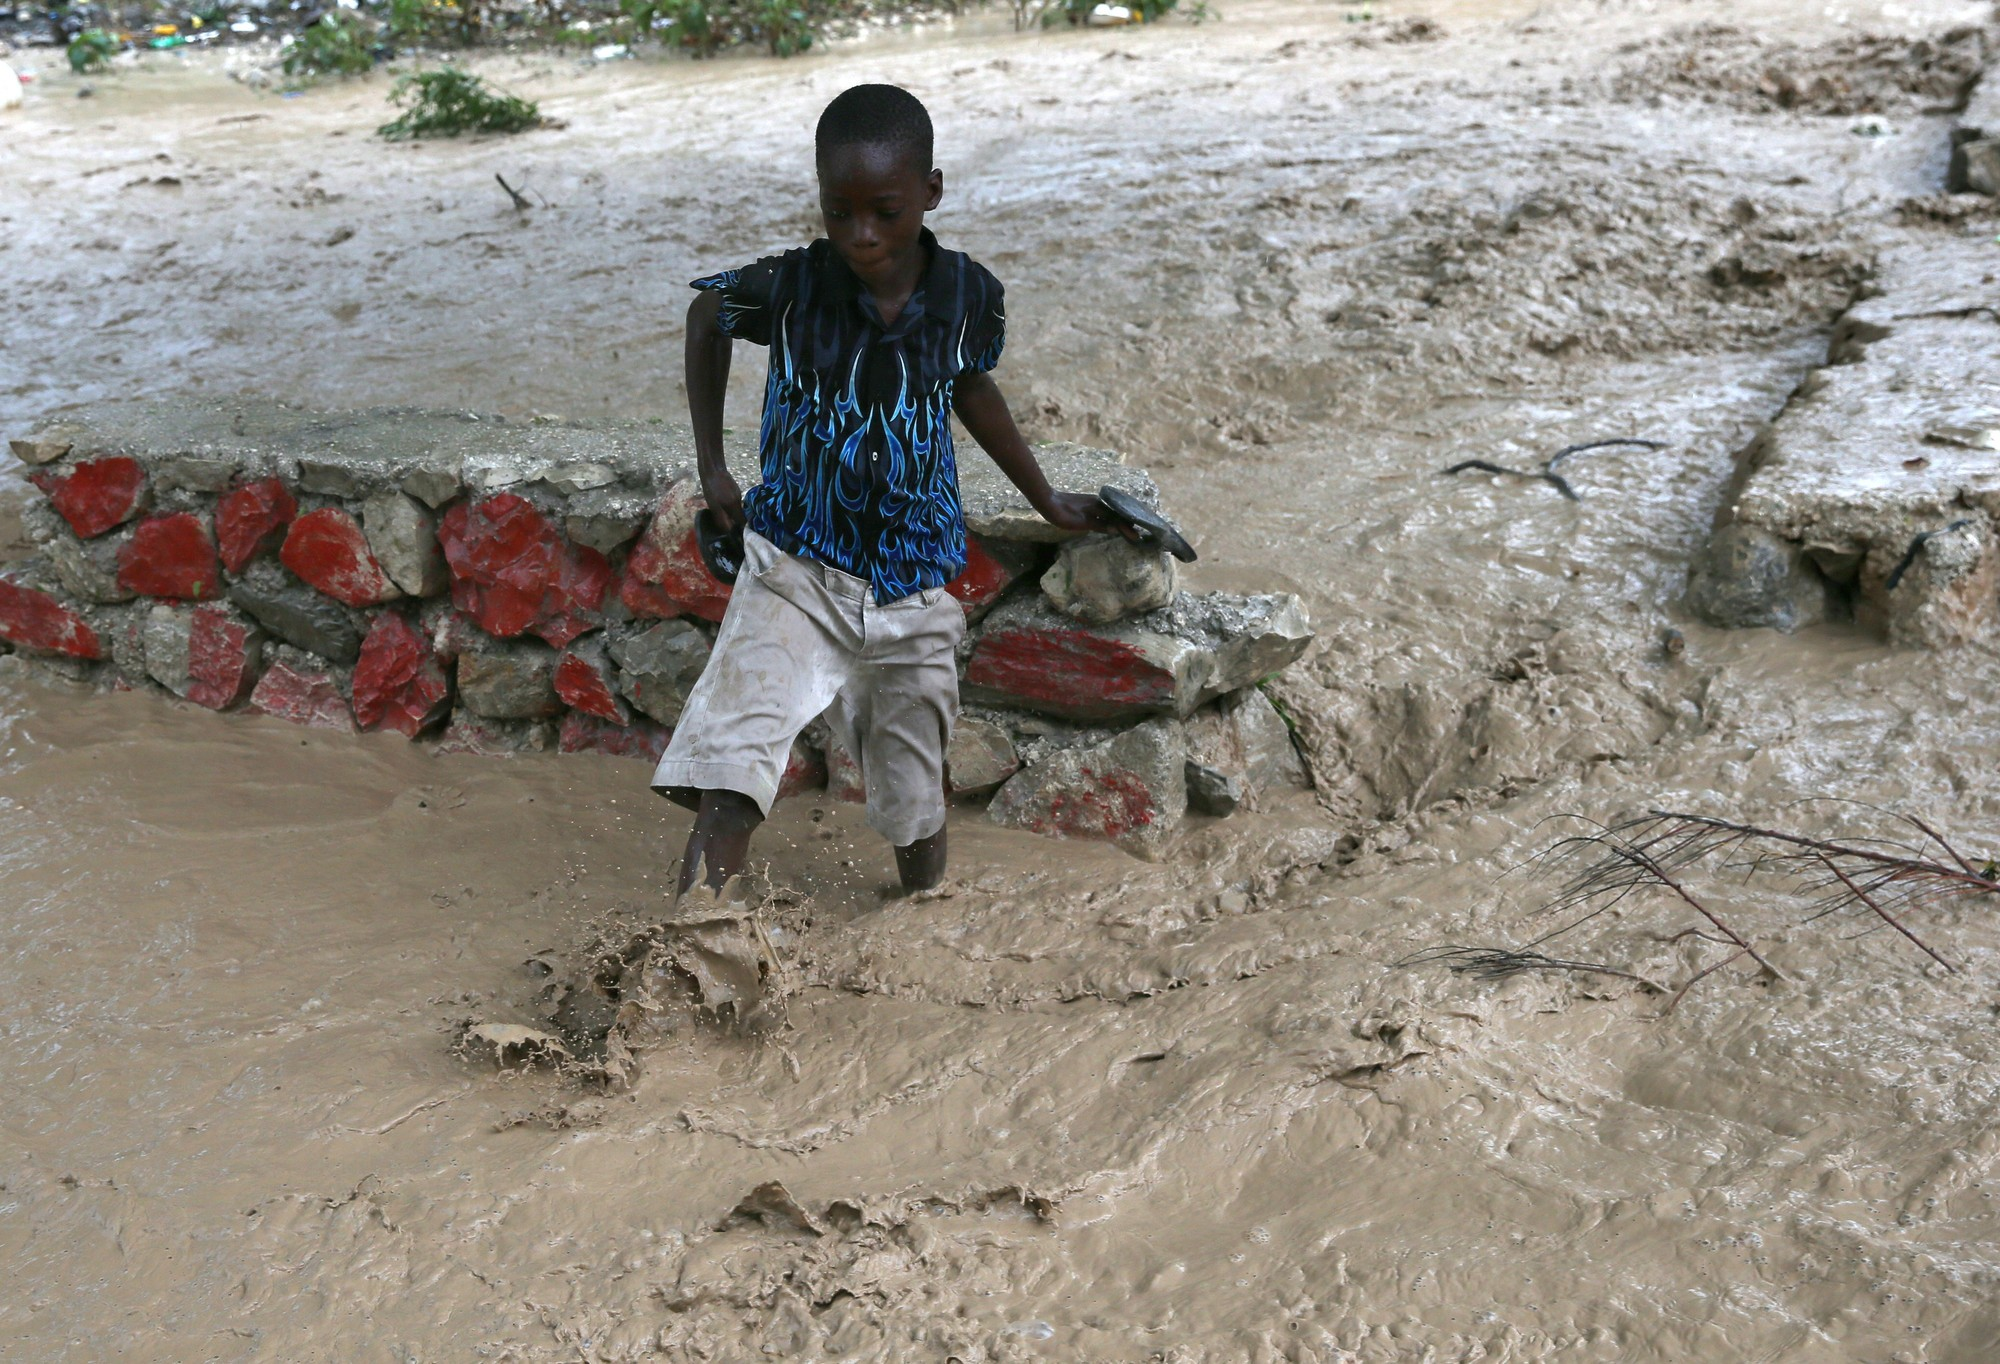 A boy escapes the flood waters caused by hurricane Matthew in Haiti